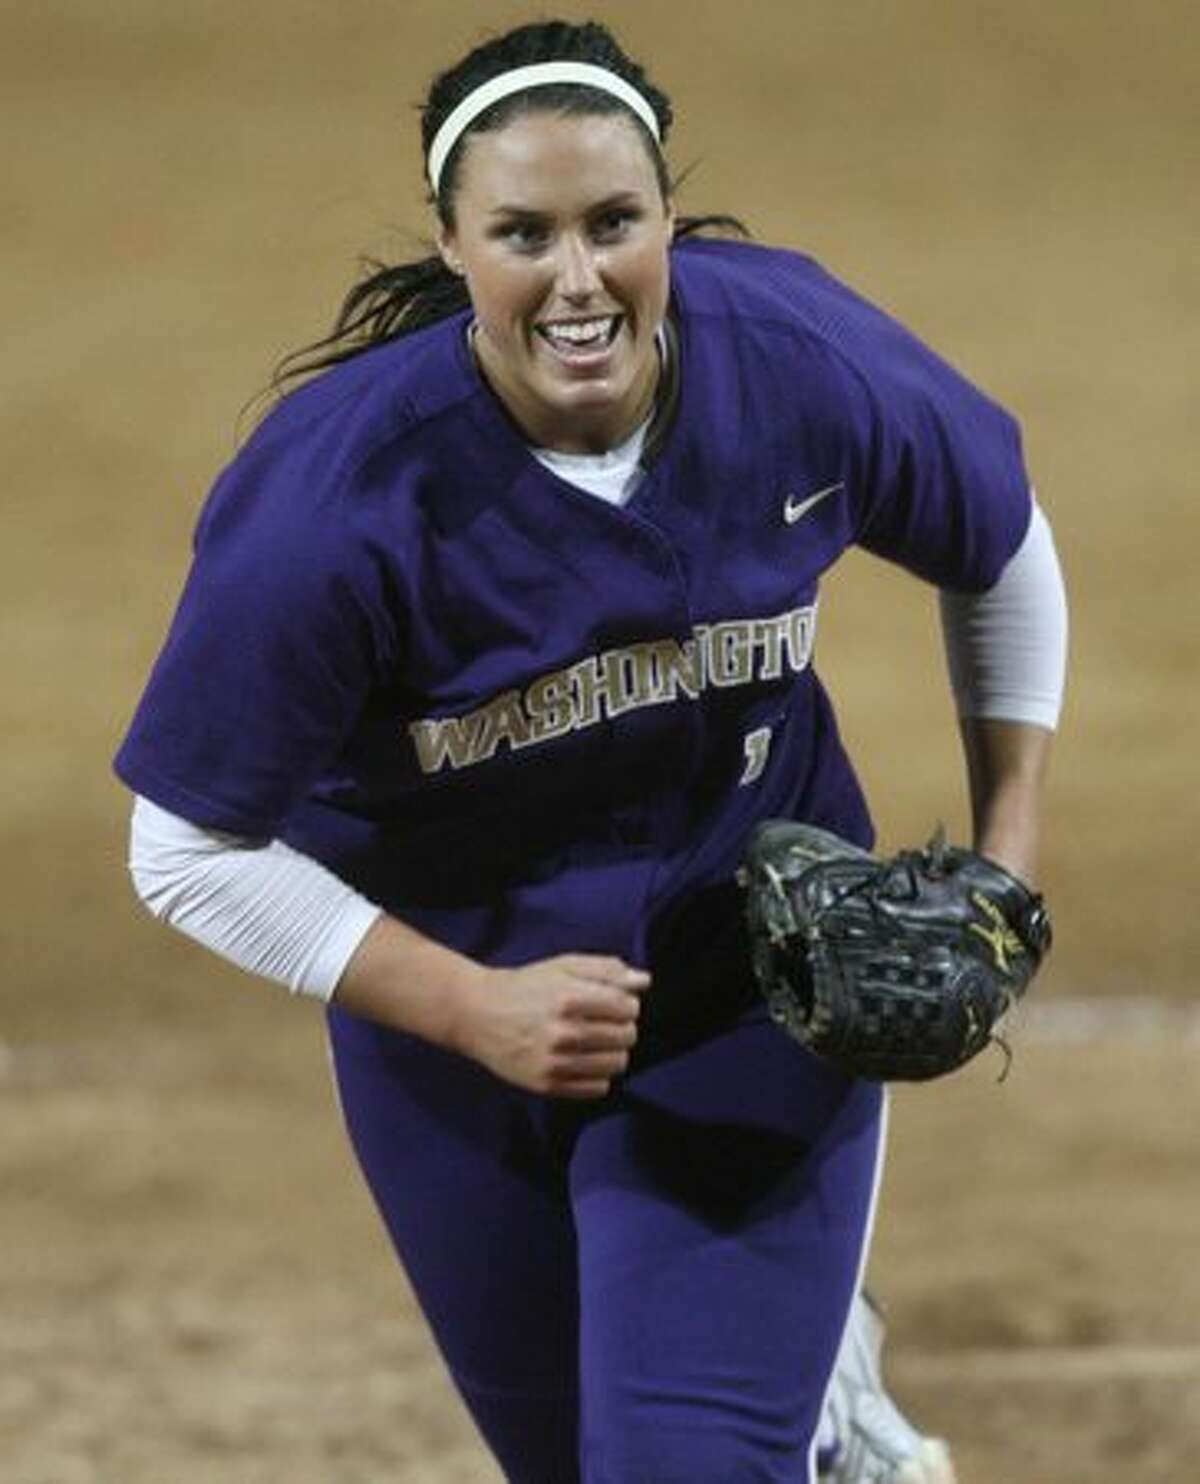 University of Washington pitcher Danielle Lawrie celebrates after striking out a University of Oklahoma player in the third of a series of games in the NCAA Super Regionals on Friday May 28, 2010 at Husky Stadium.